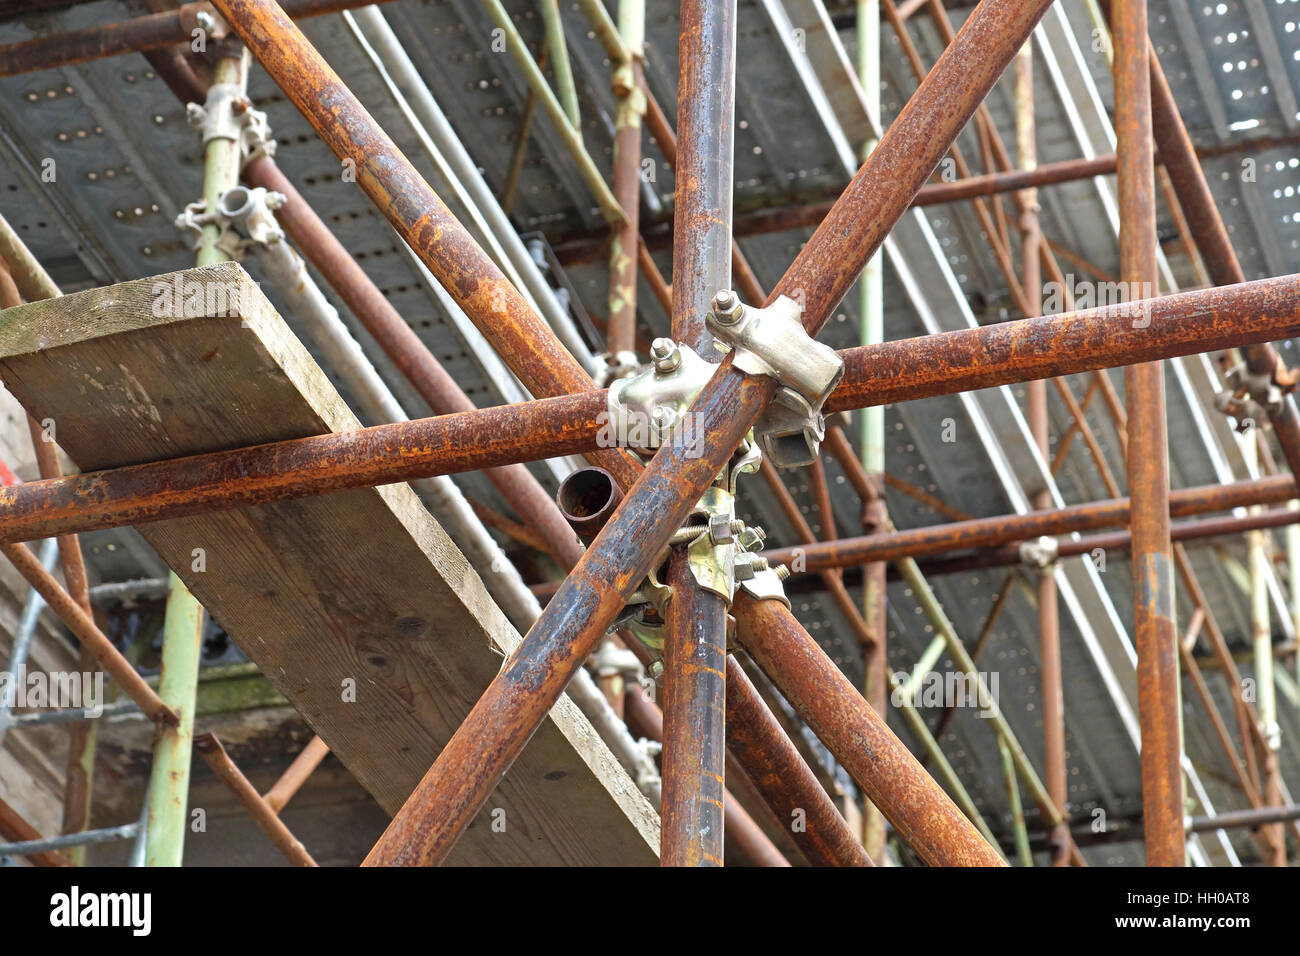 Scaffolding Pipe Clamp And Parts An Important Part Of